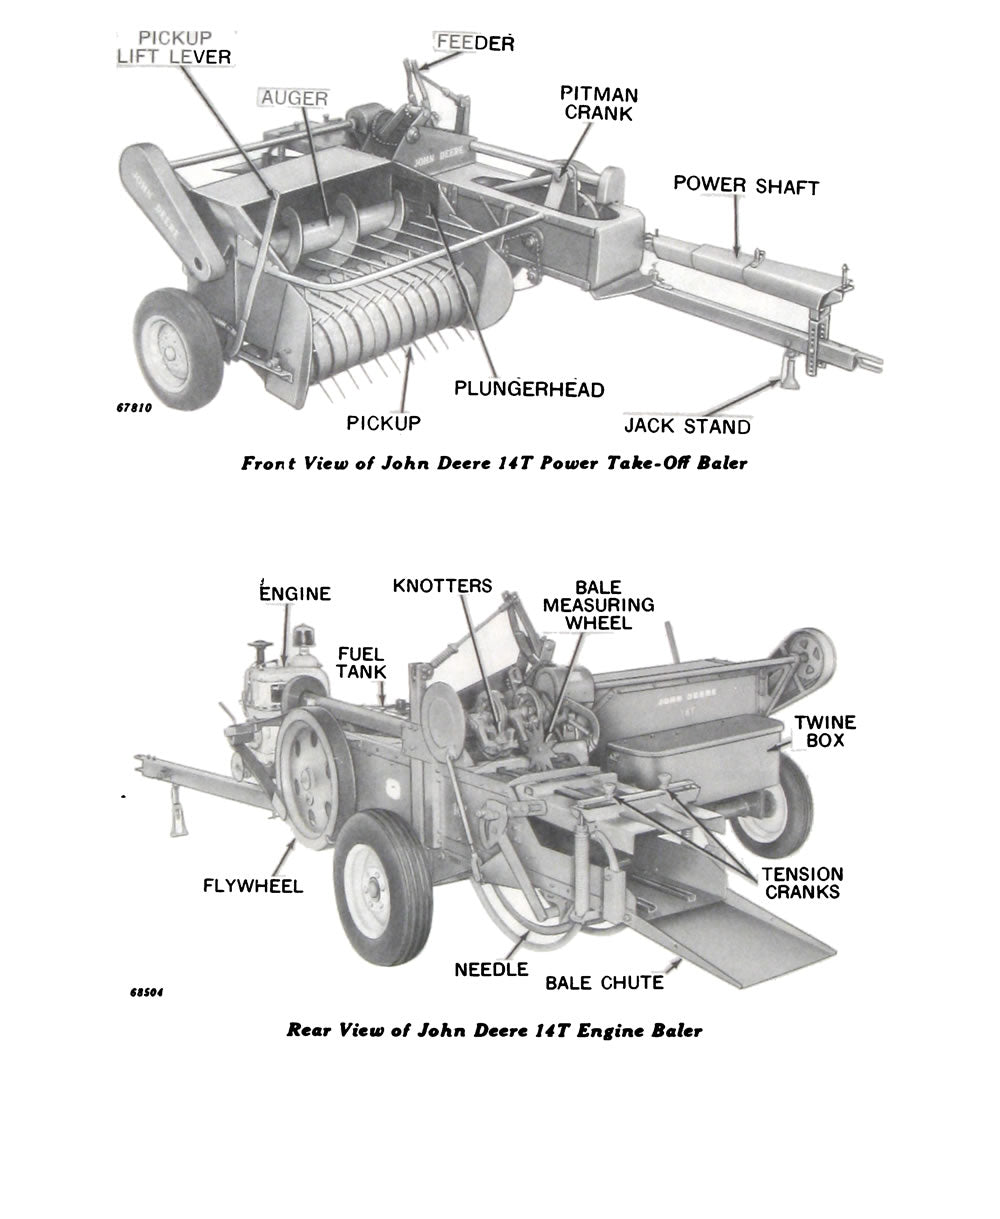 Additional pictures of the John Deere 14T Baler Manual.